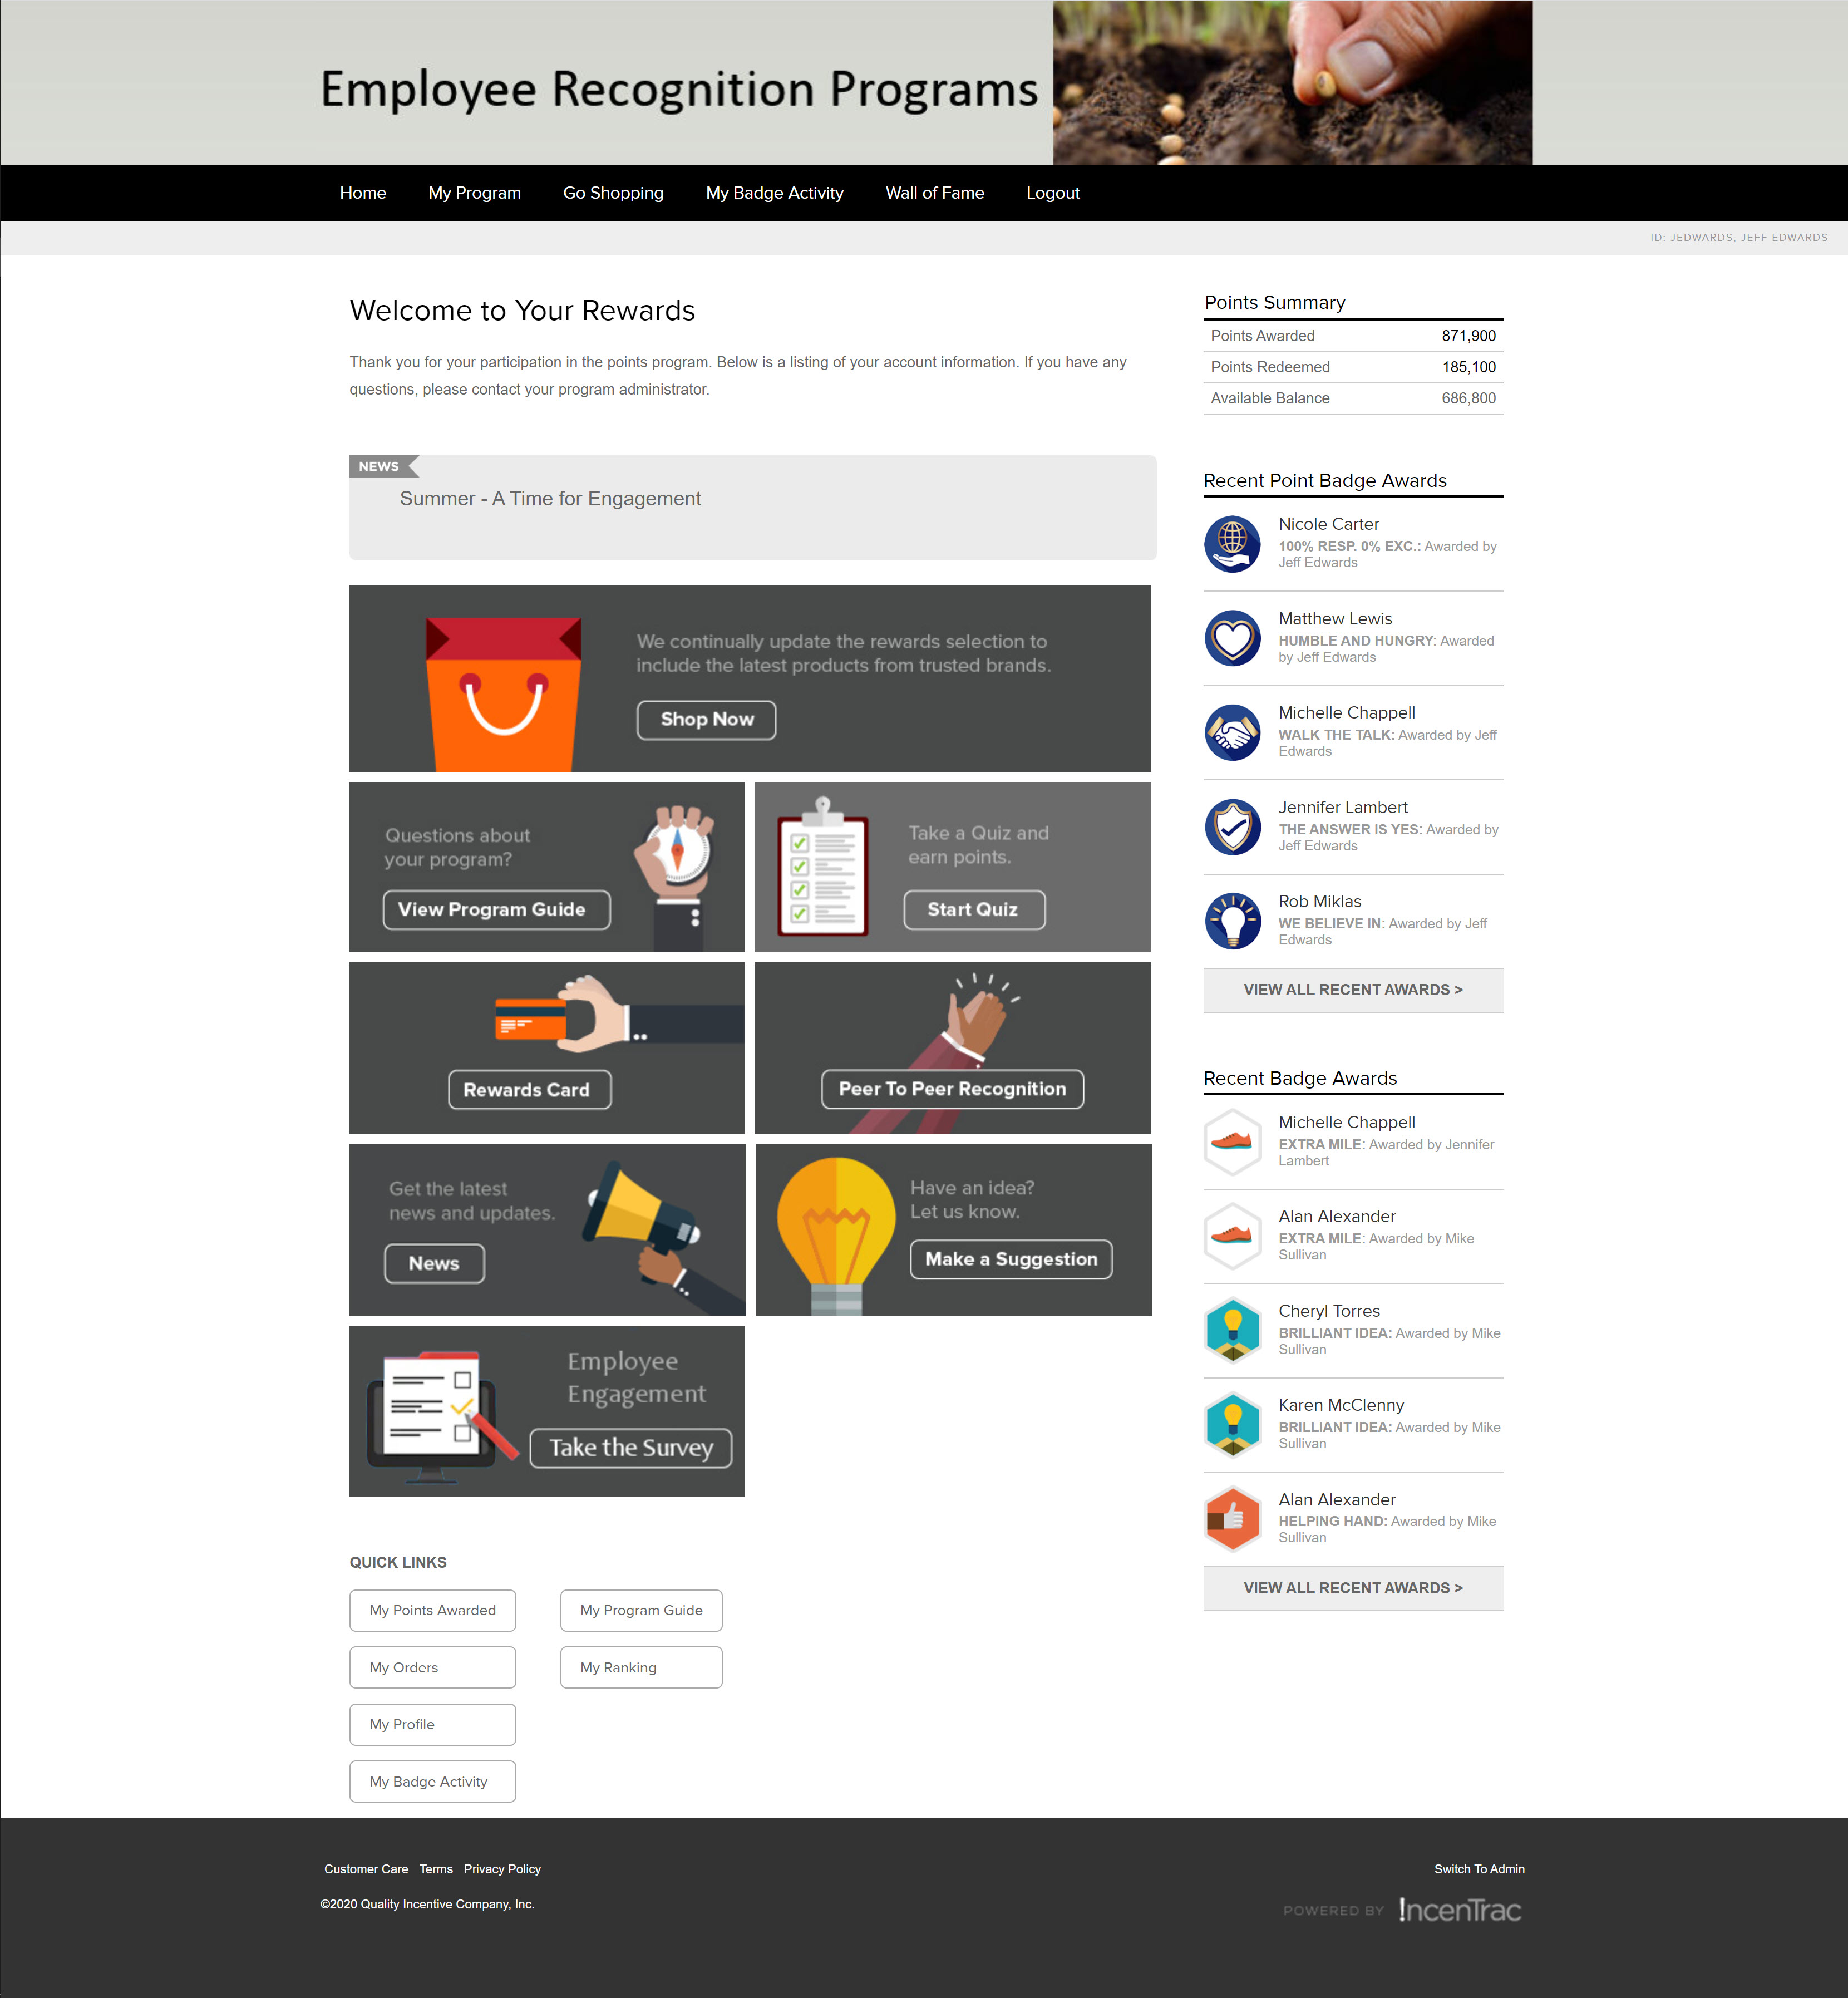 IncenTrac® provides a customized platform designed to comprehensively address any and all recognition initiatives.  IncenTrac® features responsive design, so it renders correctly regardless of the device being used for access.